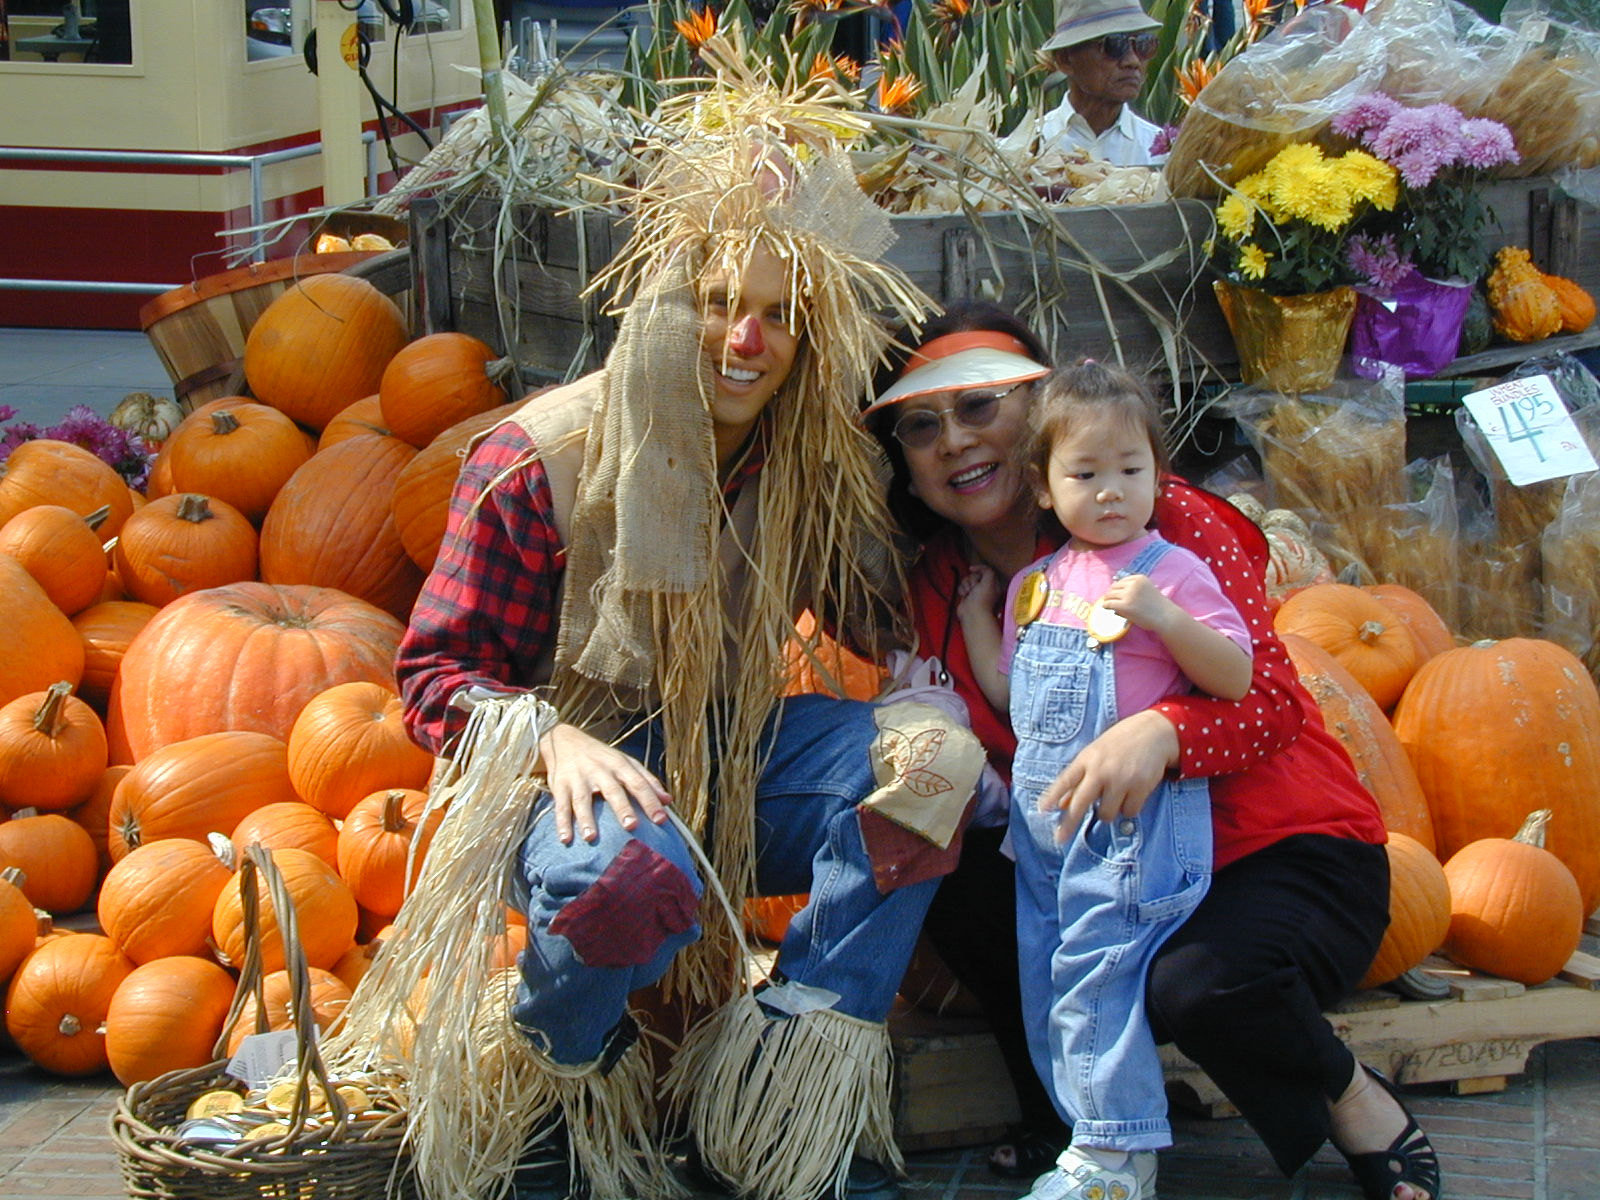 Woman, toddler and man dressed as scarecrow pose in front of pumpkins at the Original Farmers Market in LA